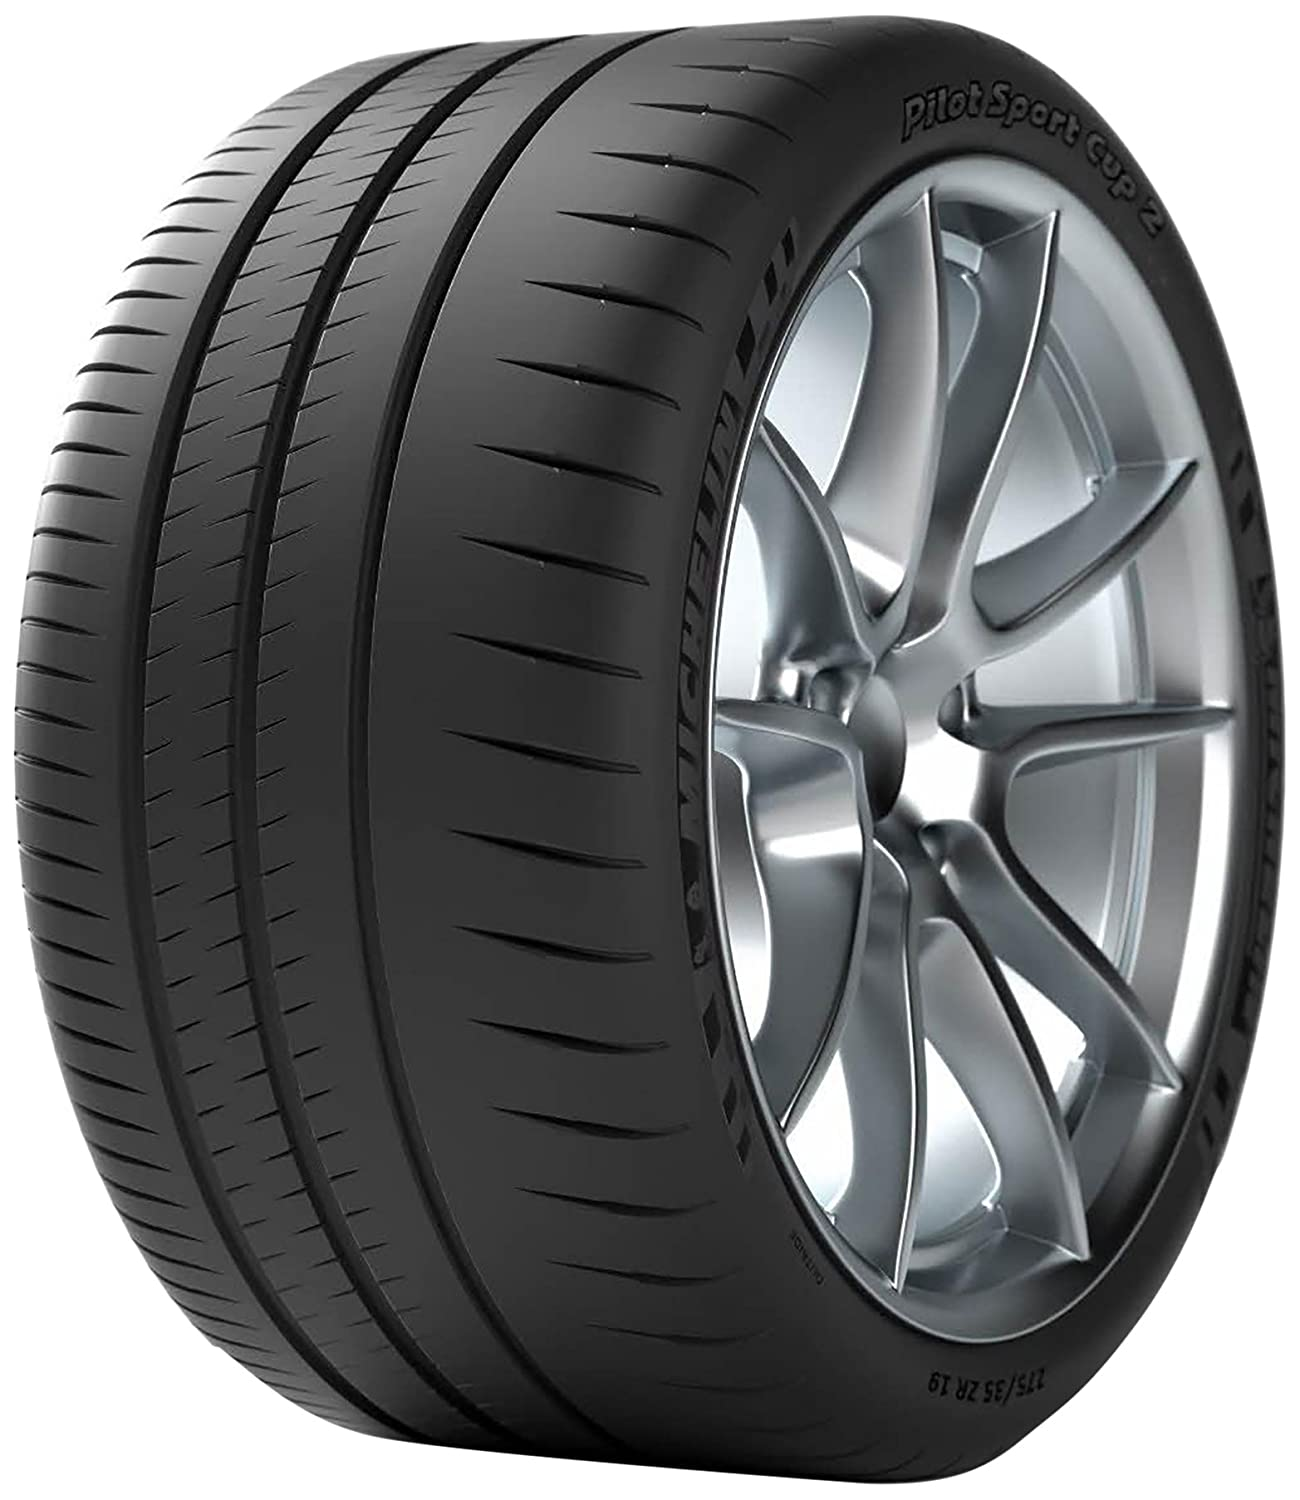 275//35ZR18 99y Michelin Pilot Super Sport Performance Radial Tire